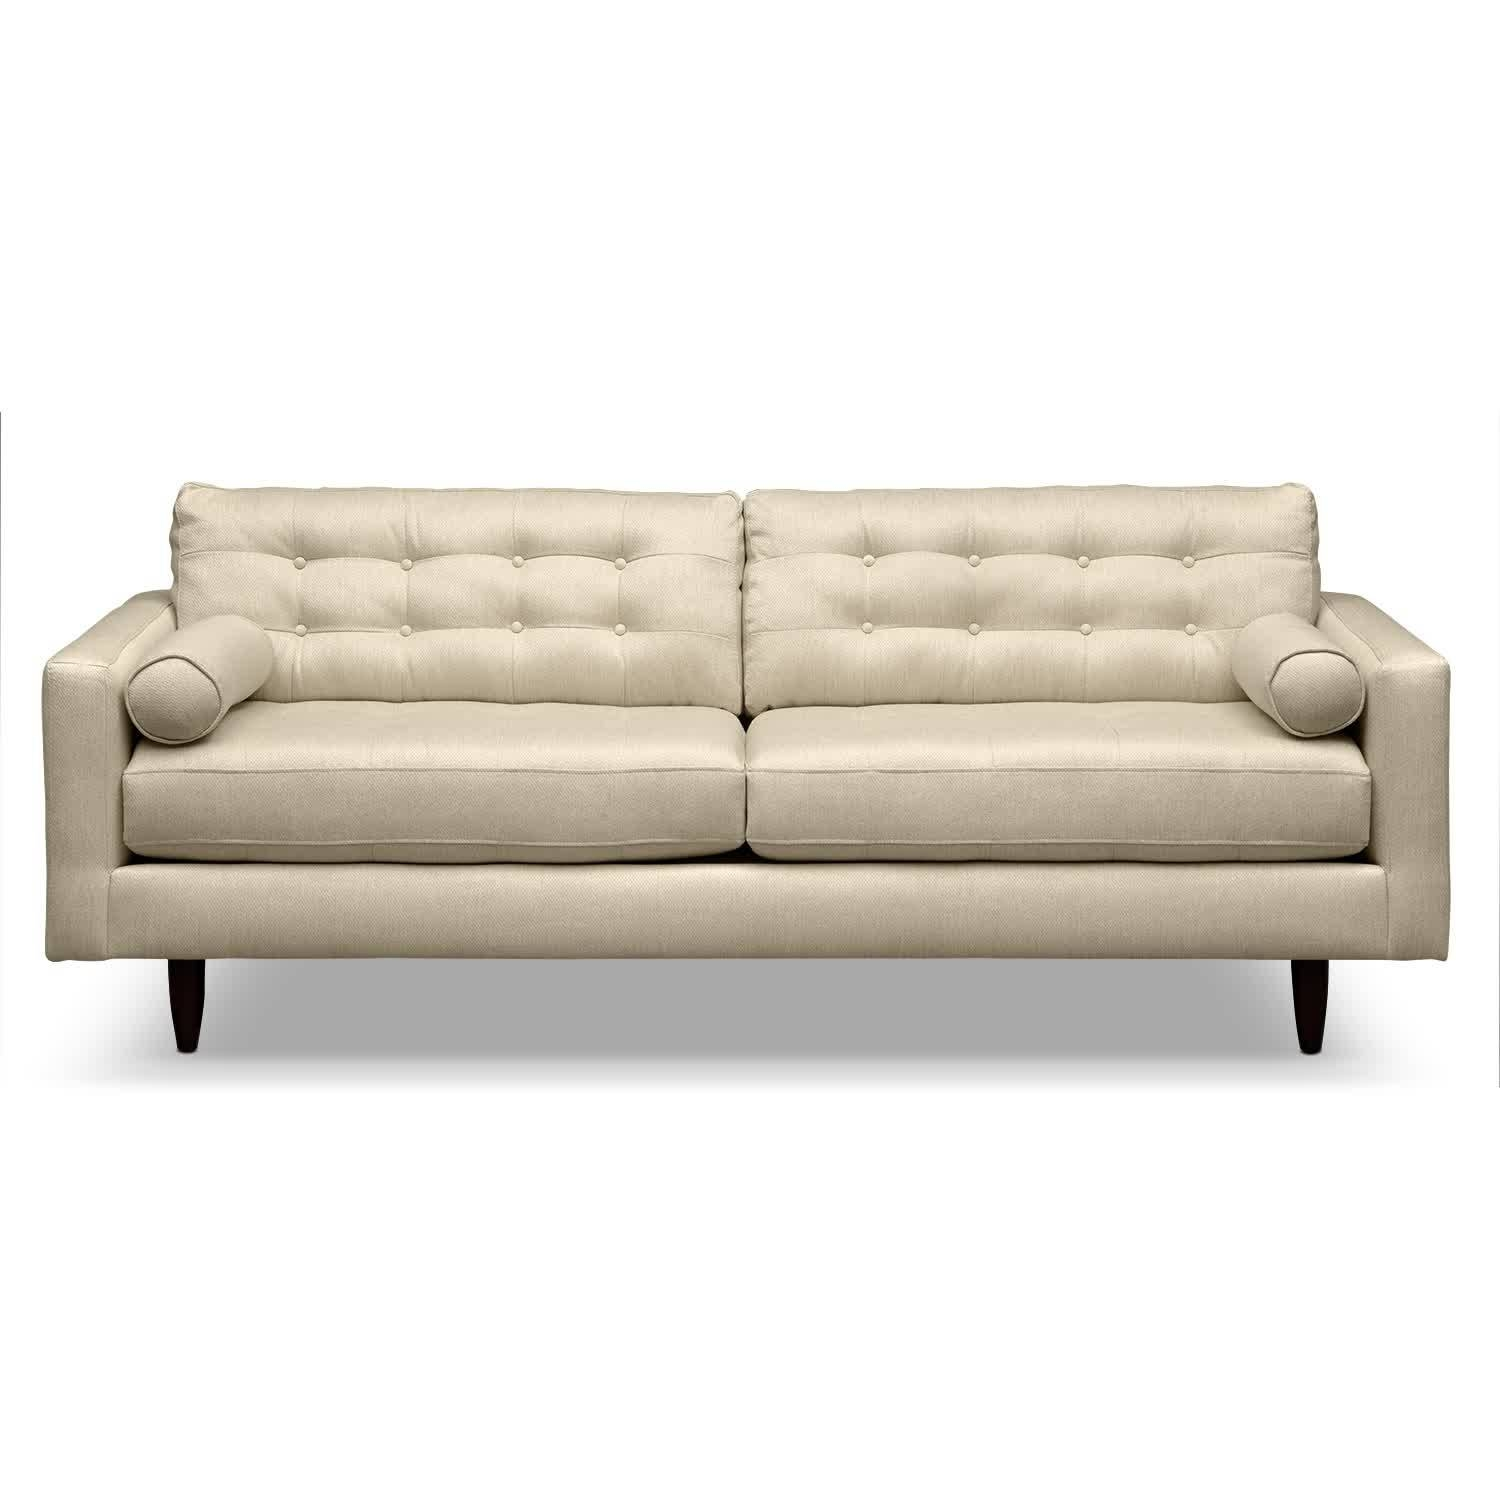 Sofa: Cool Couches For Provides A Warm To Comfortable Feel And Low In Cheap Tufted Sofas (View 9 of 30)